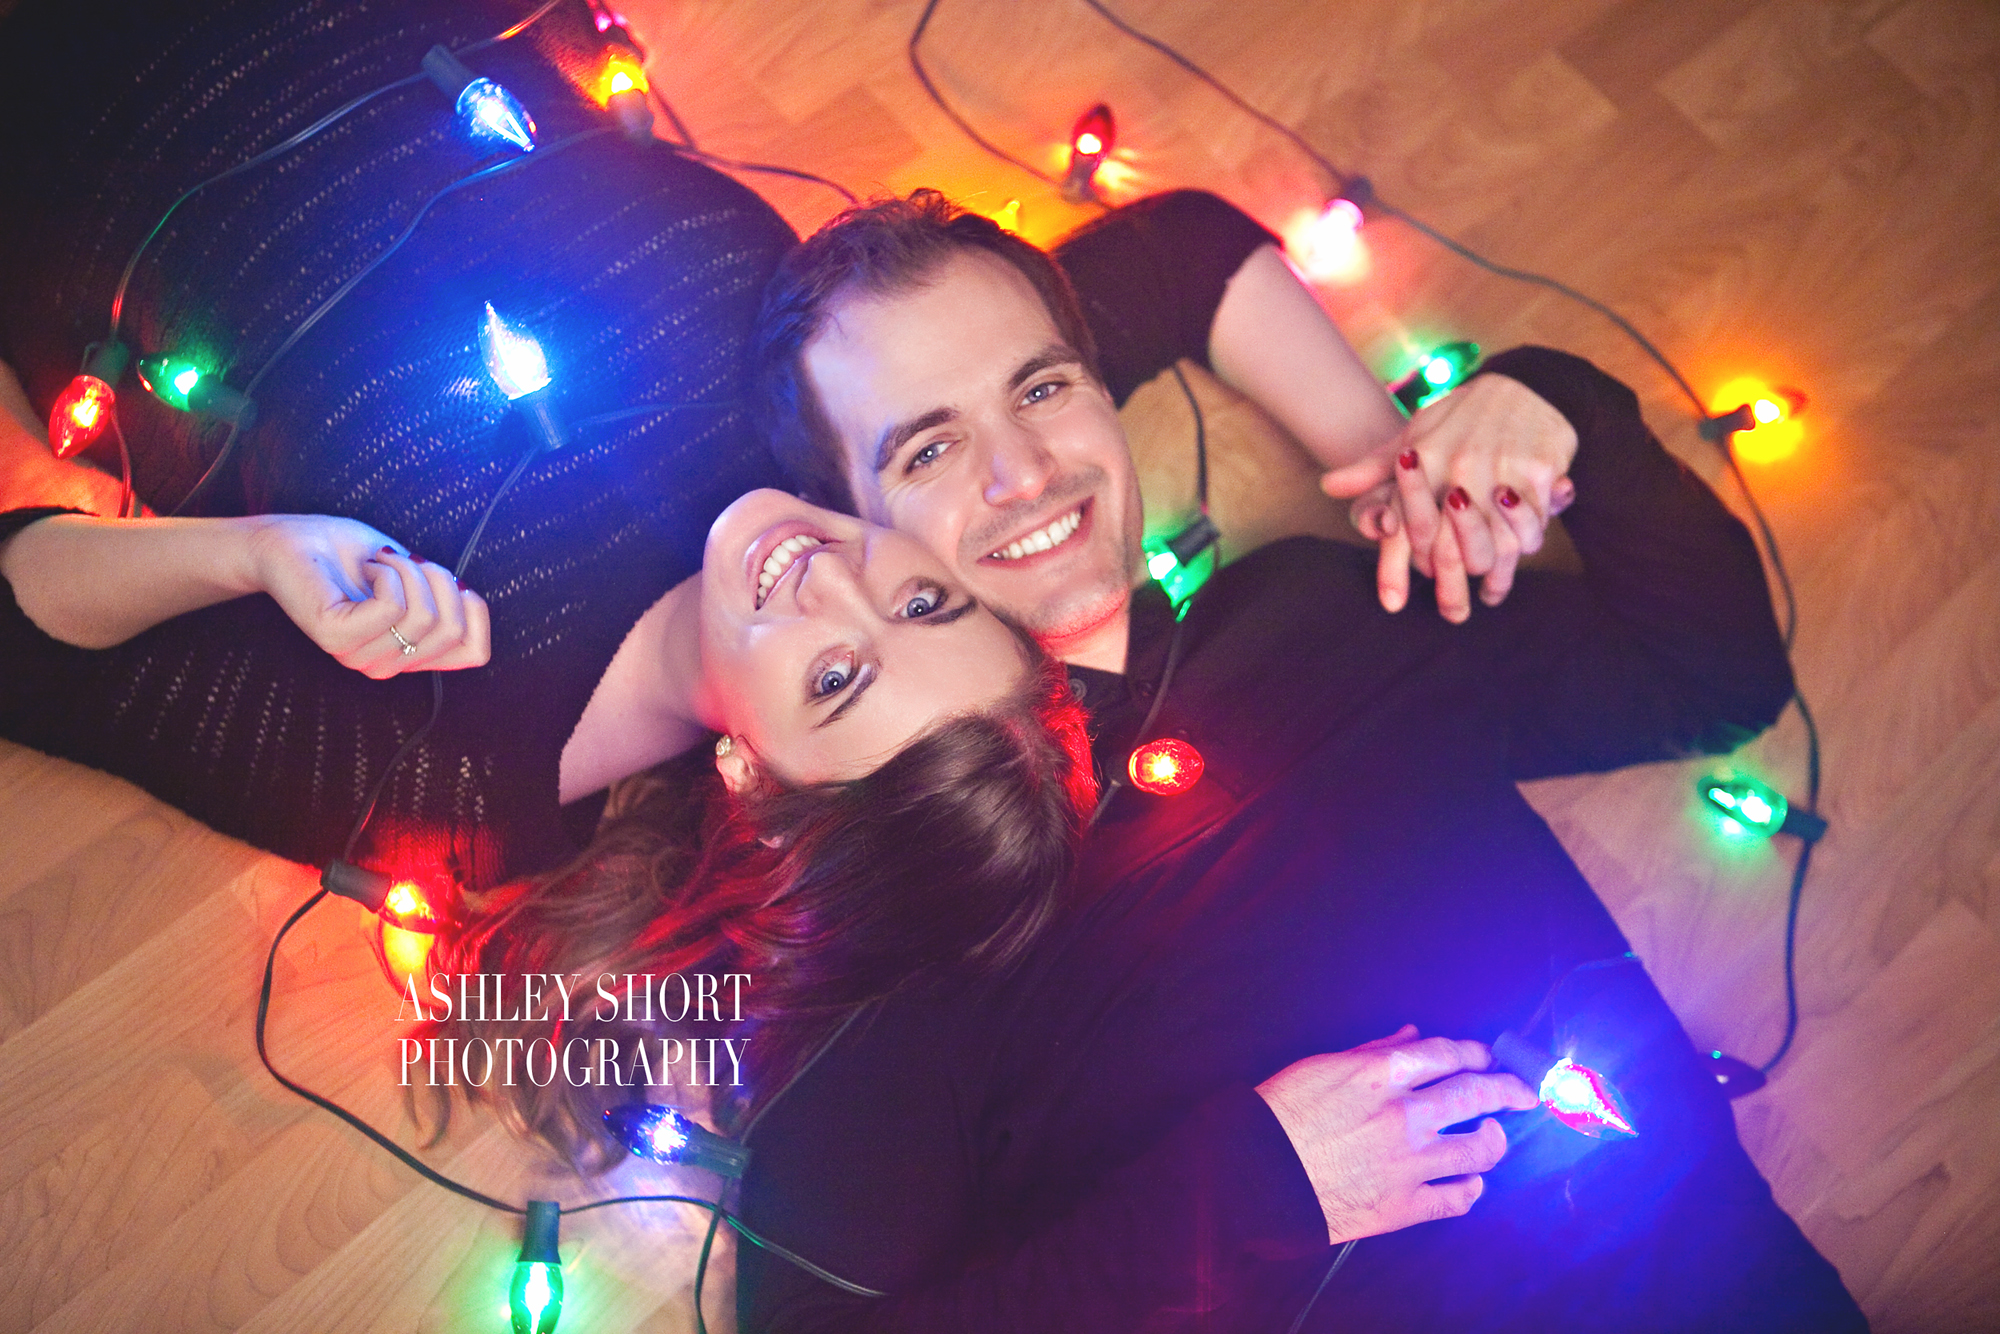 engagement portrait, couples portrait, fun engagement pictures, vintage christmas lights, ashley short photography, toledo ohio photographer, archbold ohio photographer